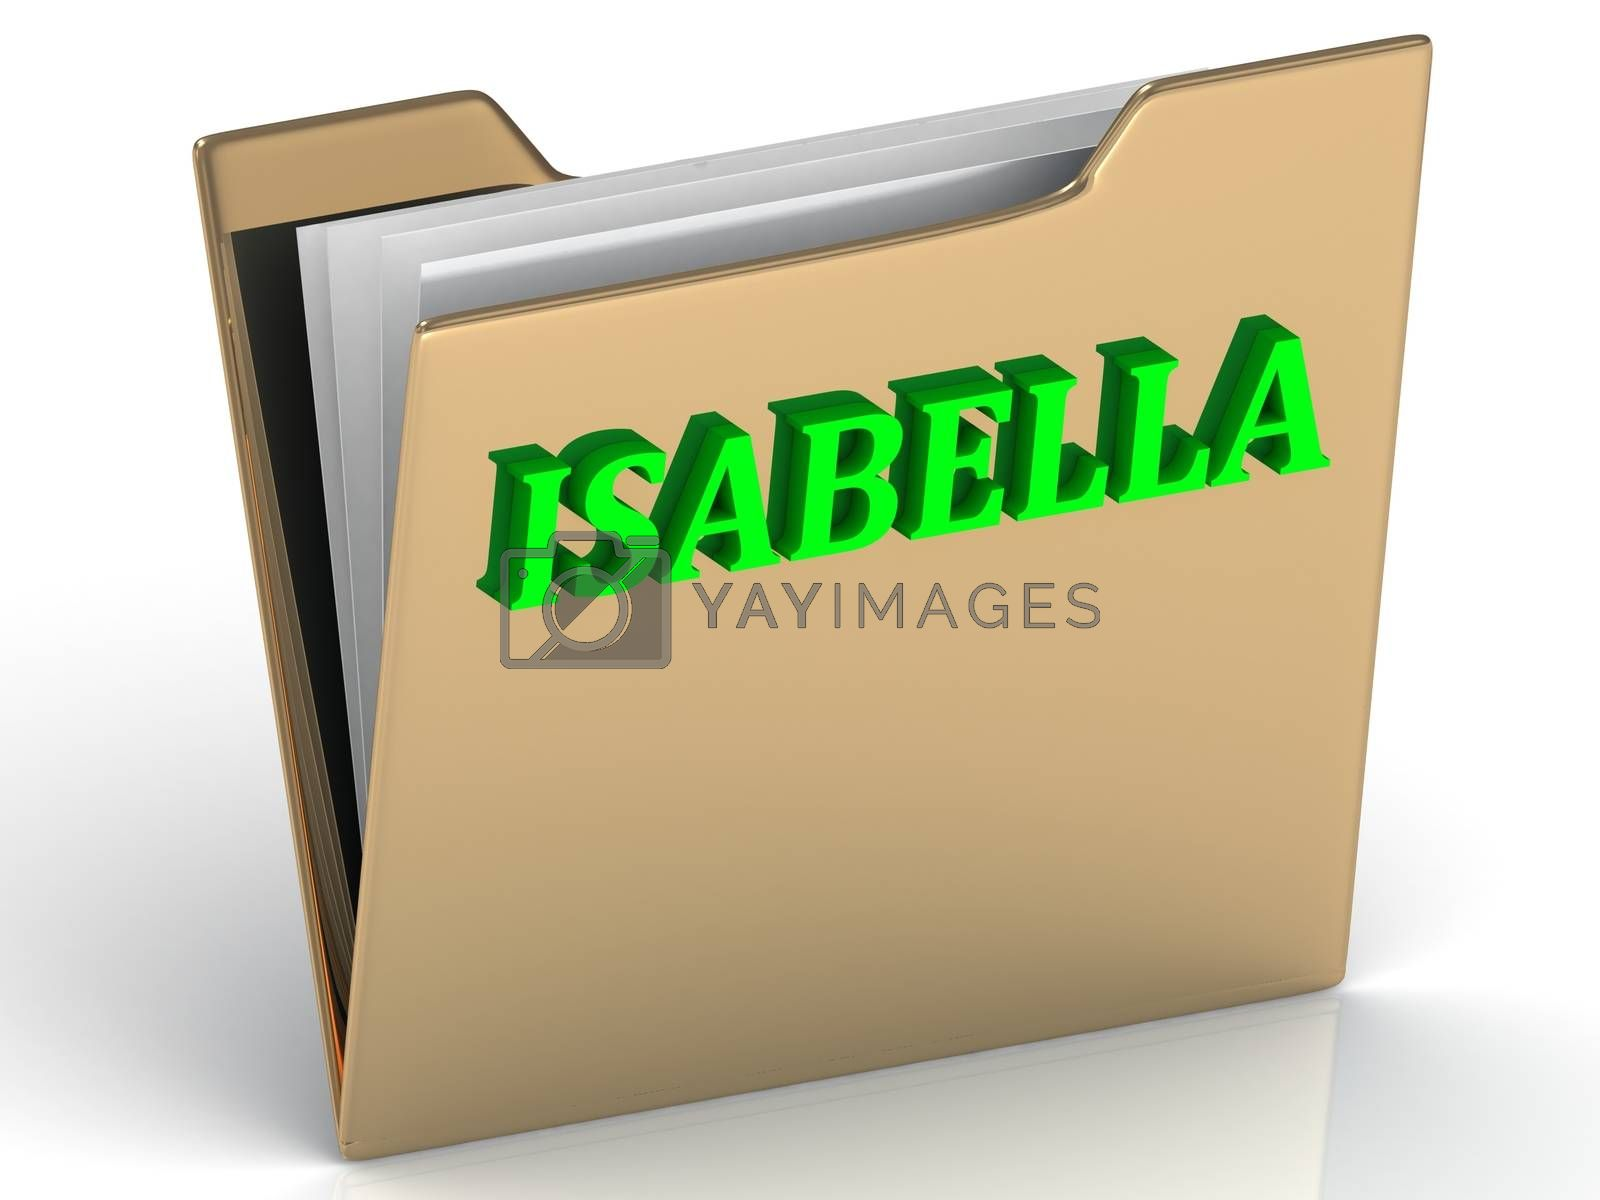 ISABELLA- bright green letters on gold paperwork folder on a white background